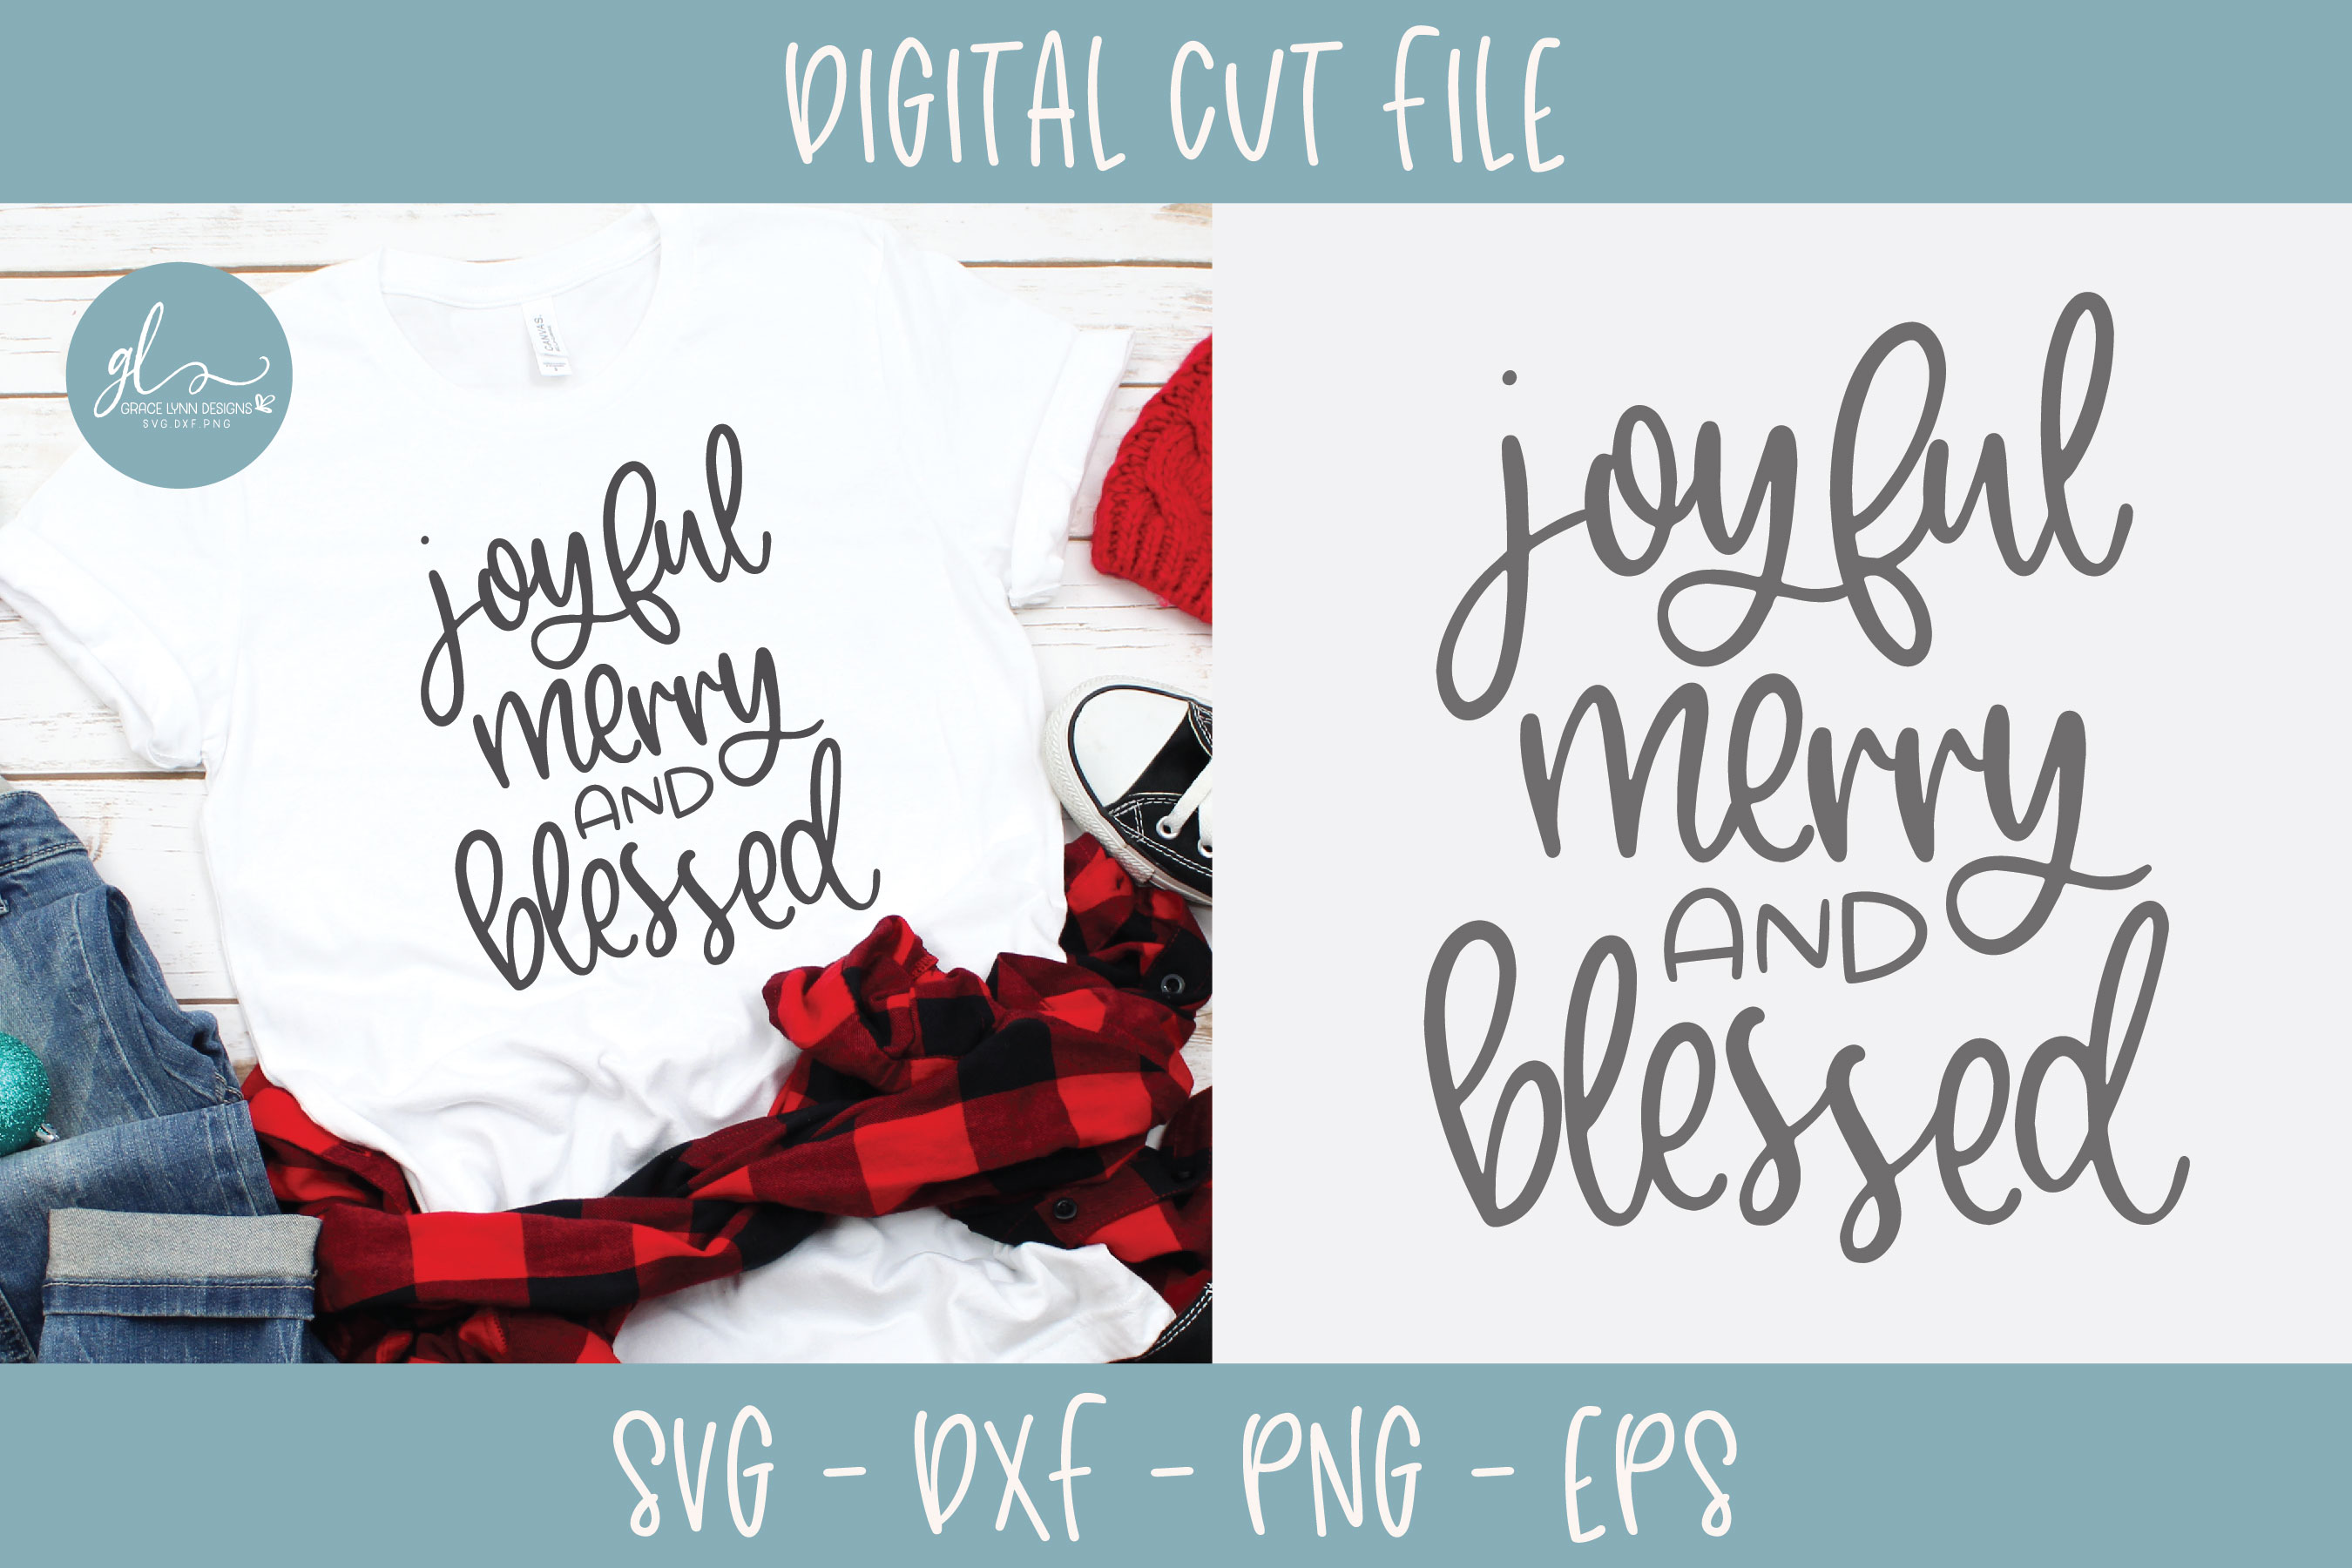 Joyful Merry And Blessed - Christmas SVG example image 3